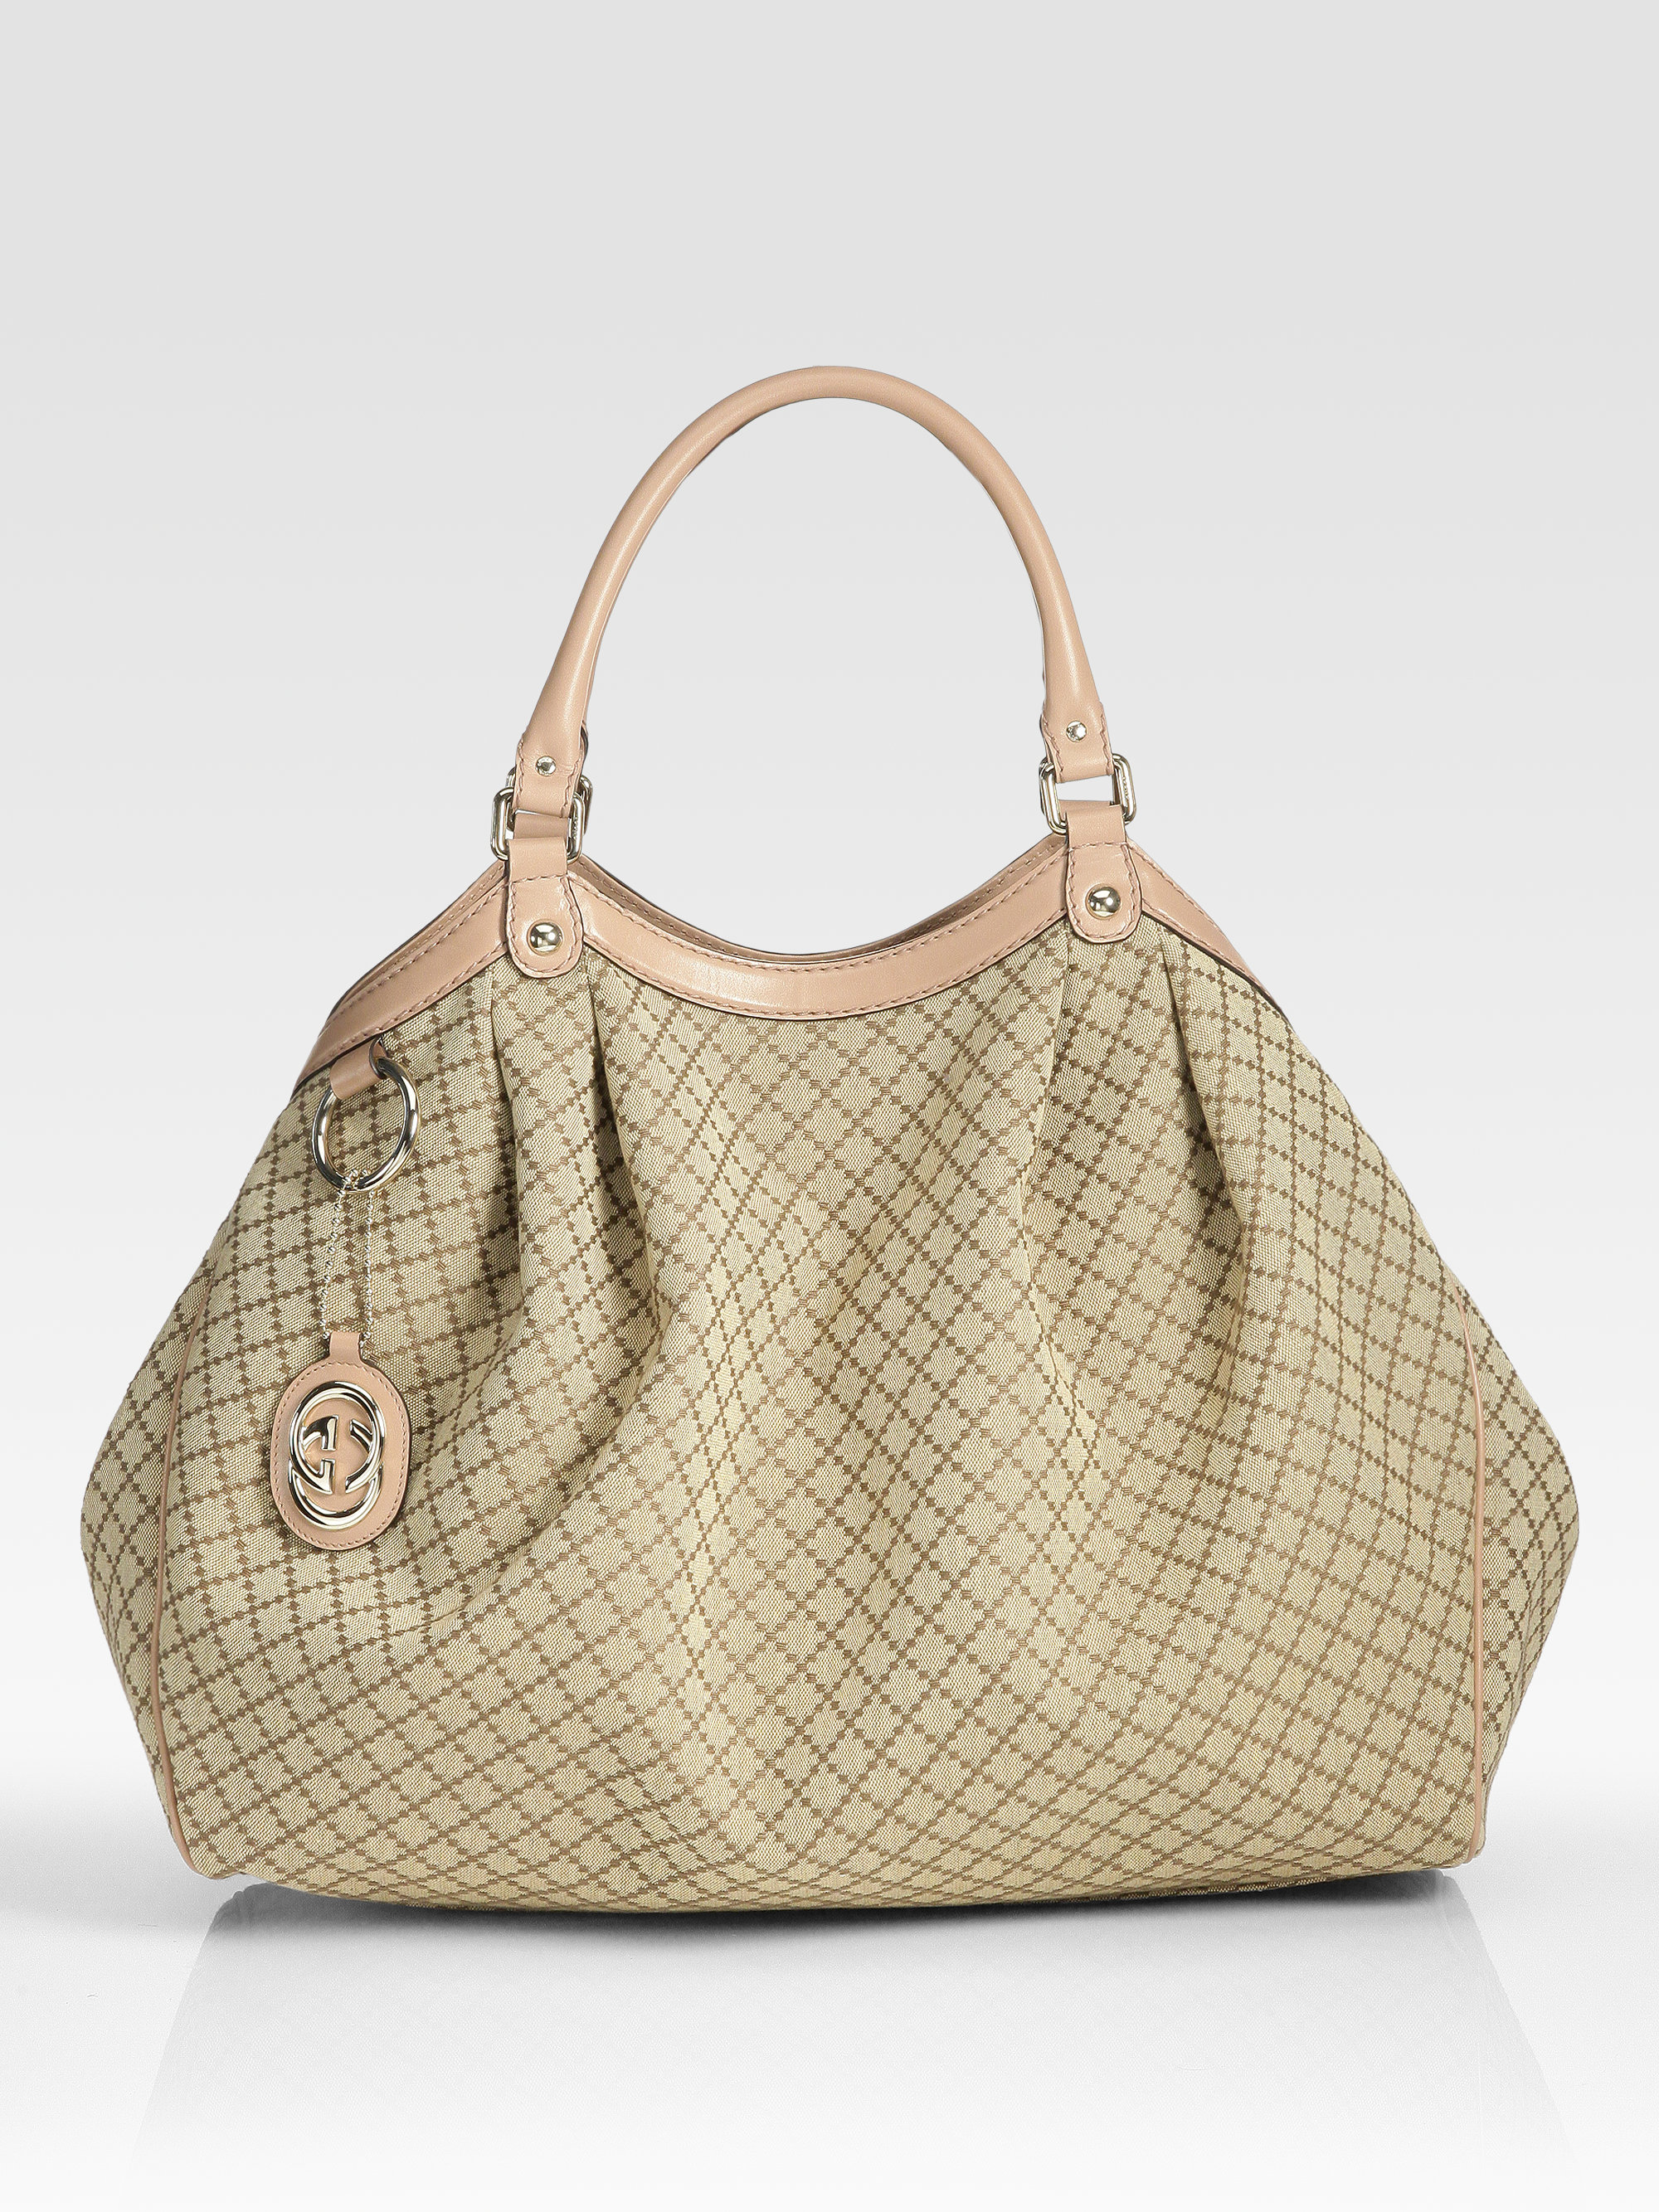 a5d6956a09a3 Gucci Sukey Large Tote Bags | Stanford Center for Opportunity Policy ...